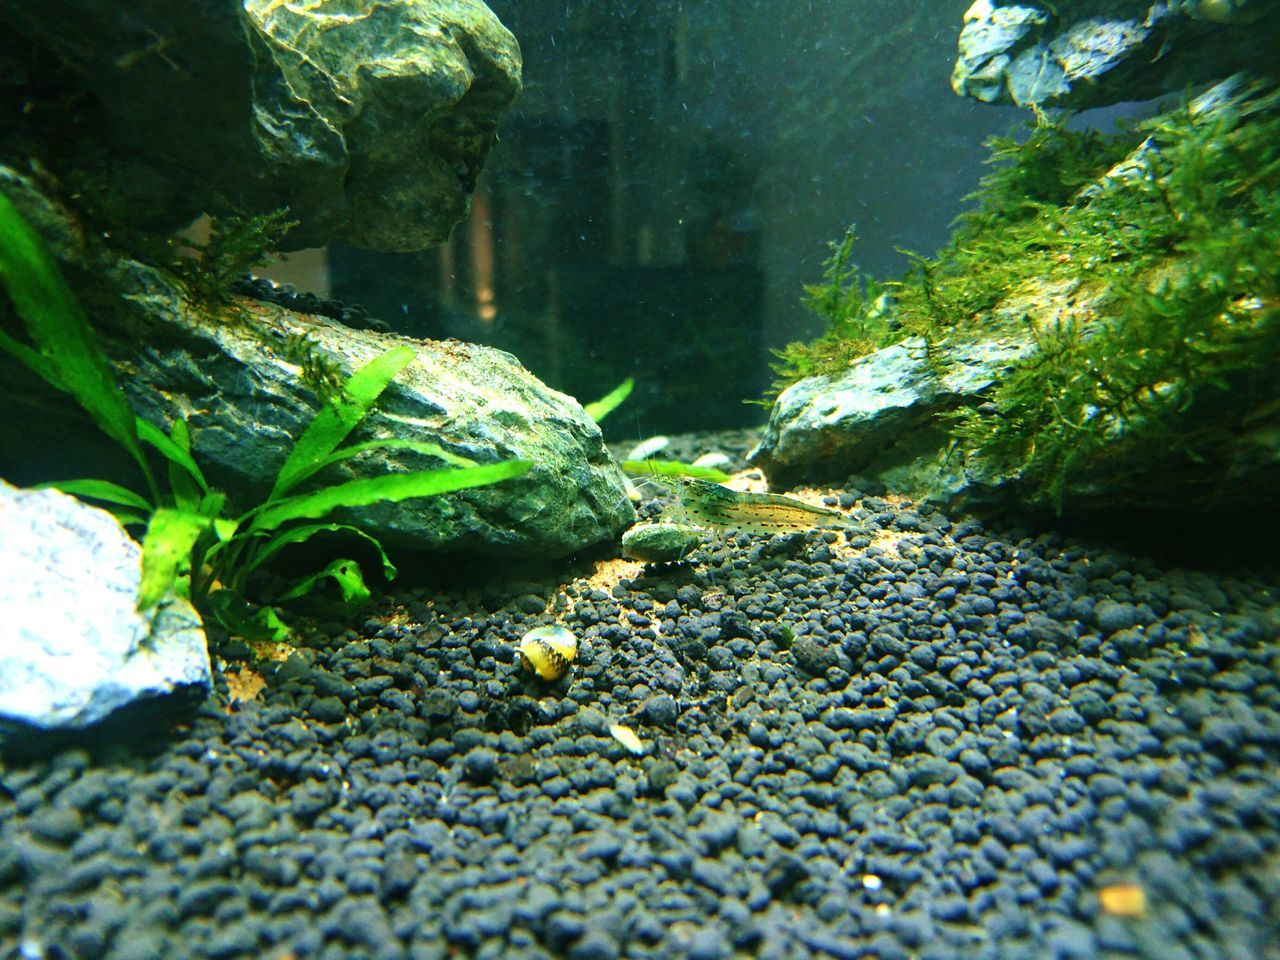 animal themes, one animal, animals in the wild, green color, no people, rock - object, day, nature, animal wildlife, moss, outdoors, close-up, water, underwater, sea life, beauty in nature, undersea